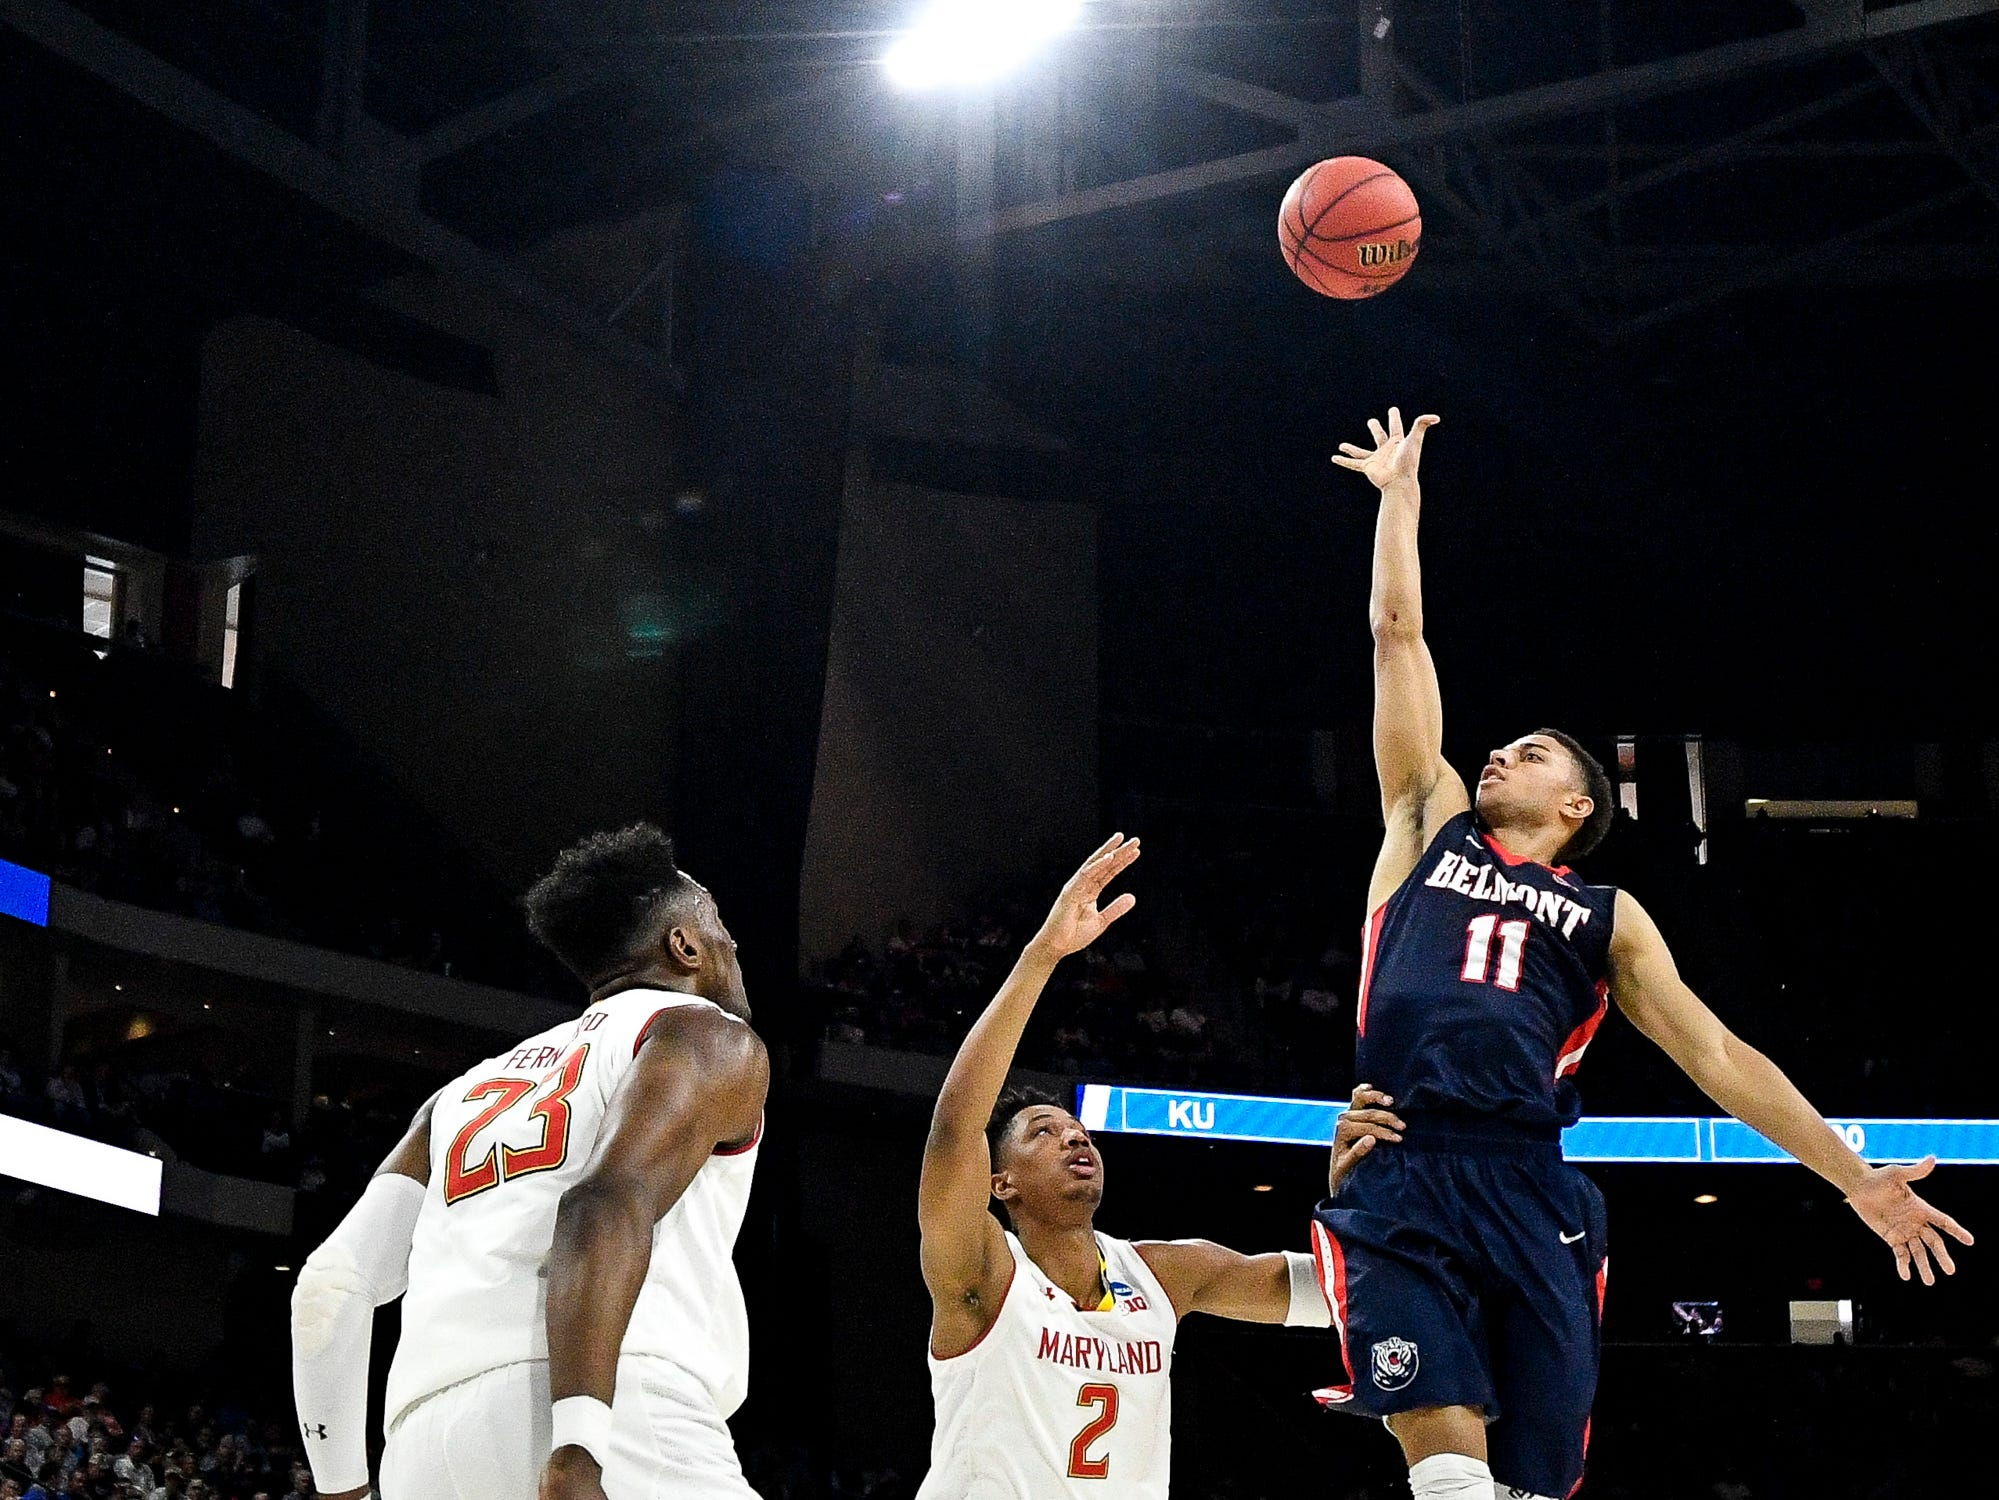 Belmont guard Kevin McClain (11) shoots past Maryland guard Aaron Wiggins (2) during the first half of the first-round NCAA college basketball tournament game at VyStar Veterans Memorial Arena in Jacksonville, Fla., Thursday, March 21, 2019.